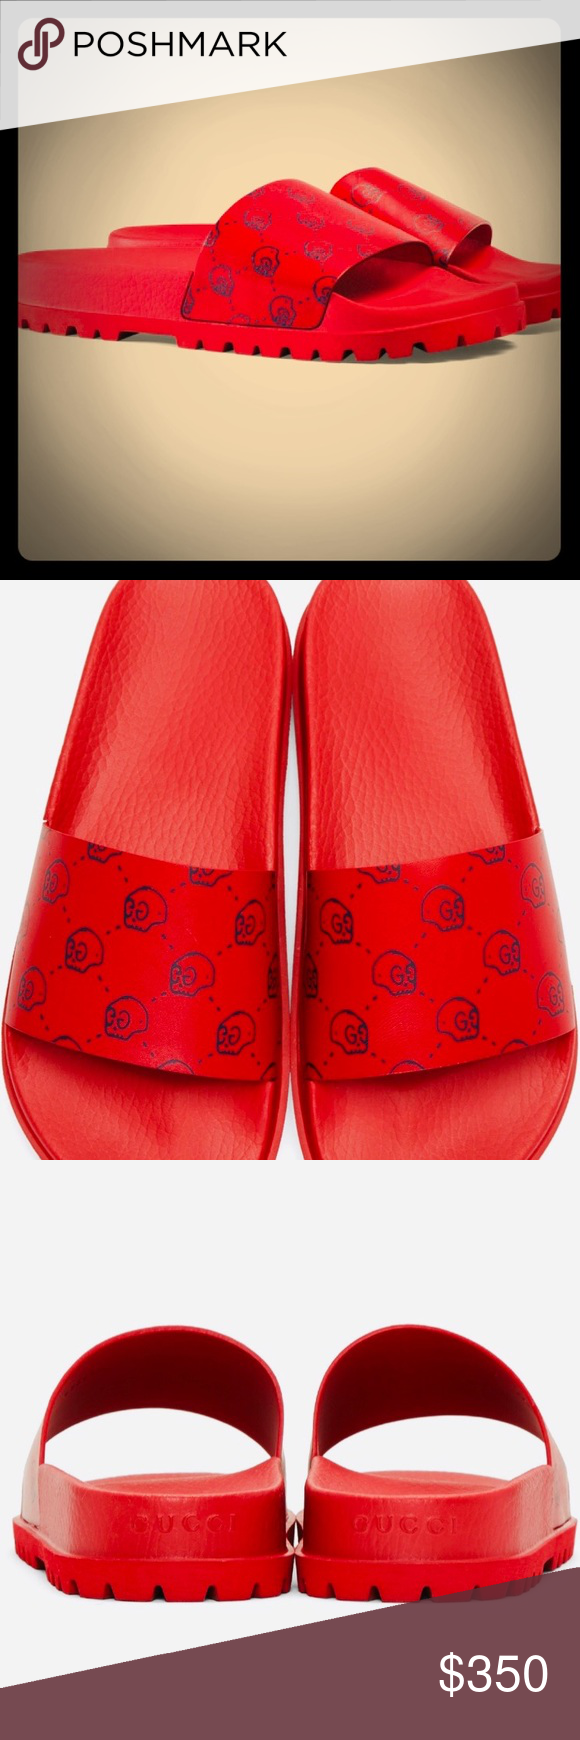 2bf0e2fdaeb2 Gucci Ghost Red Lux Slides RARE Brand new Red GUCCI sliders with box and  dust bags